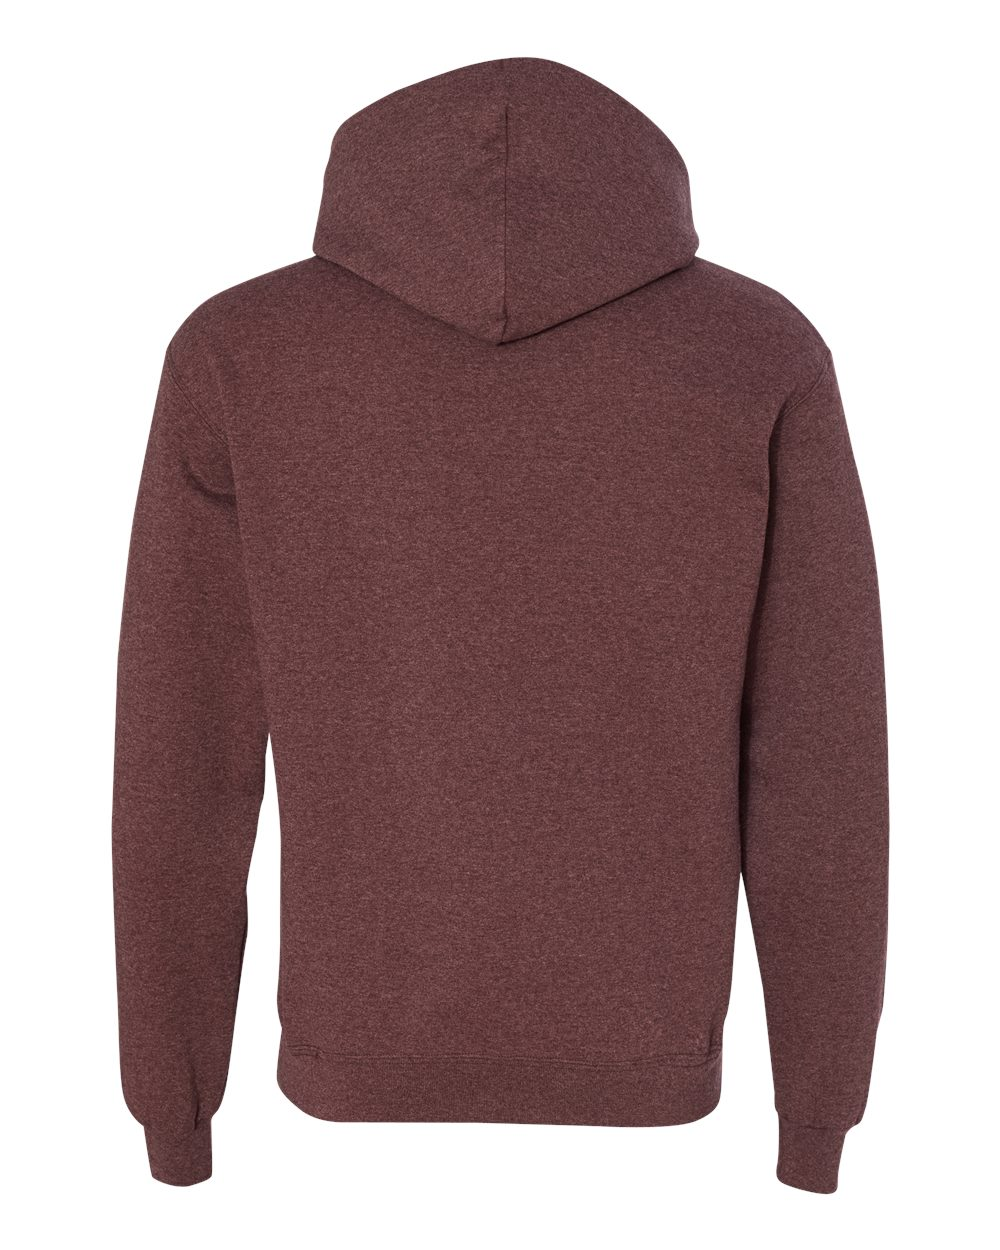 Champion-Mens-Double-Dry-Eco-Hooded-Sweatshirt-Hoodie-Pullover-S700-up-to-3XL miniature 25